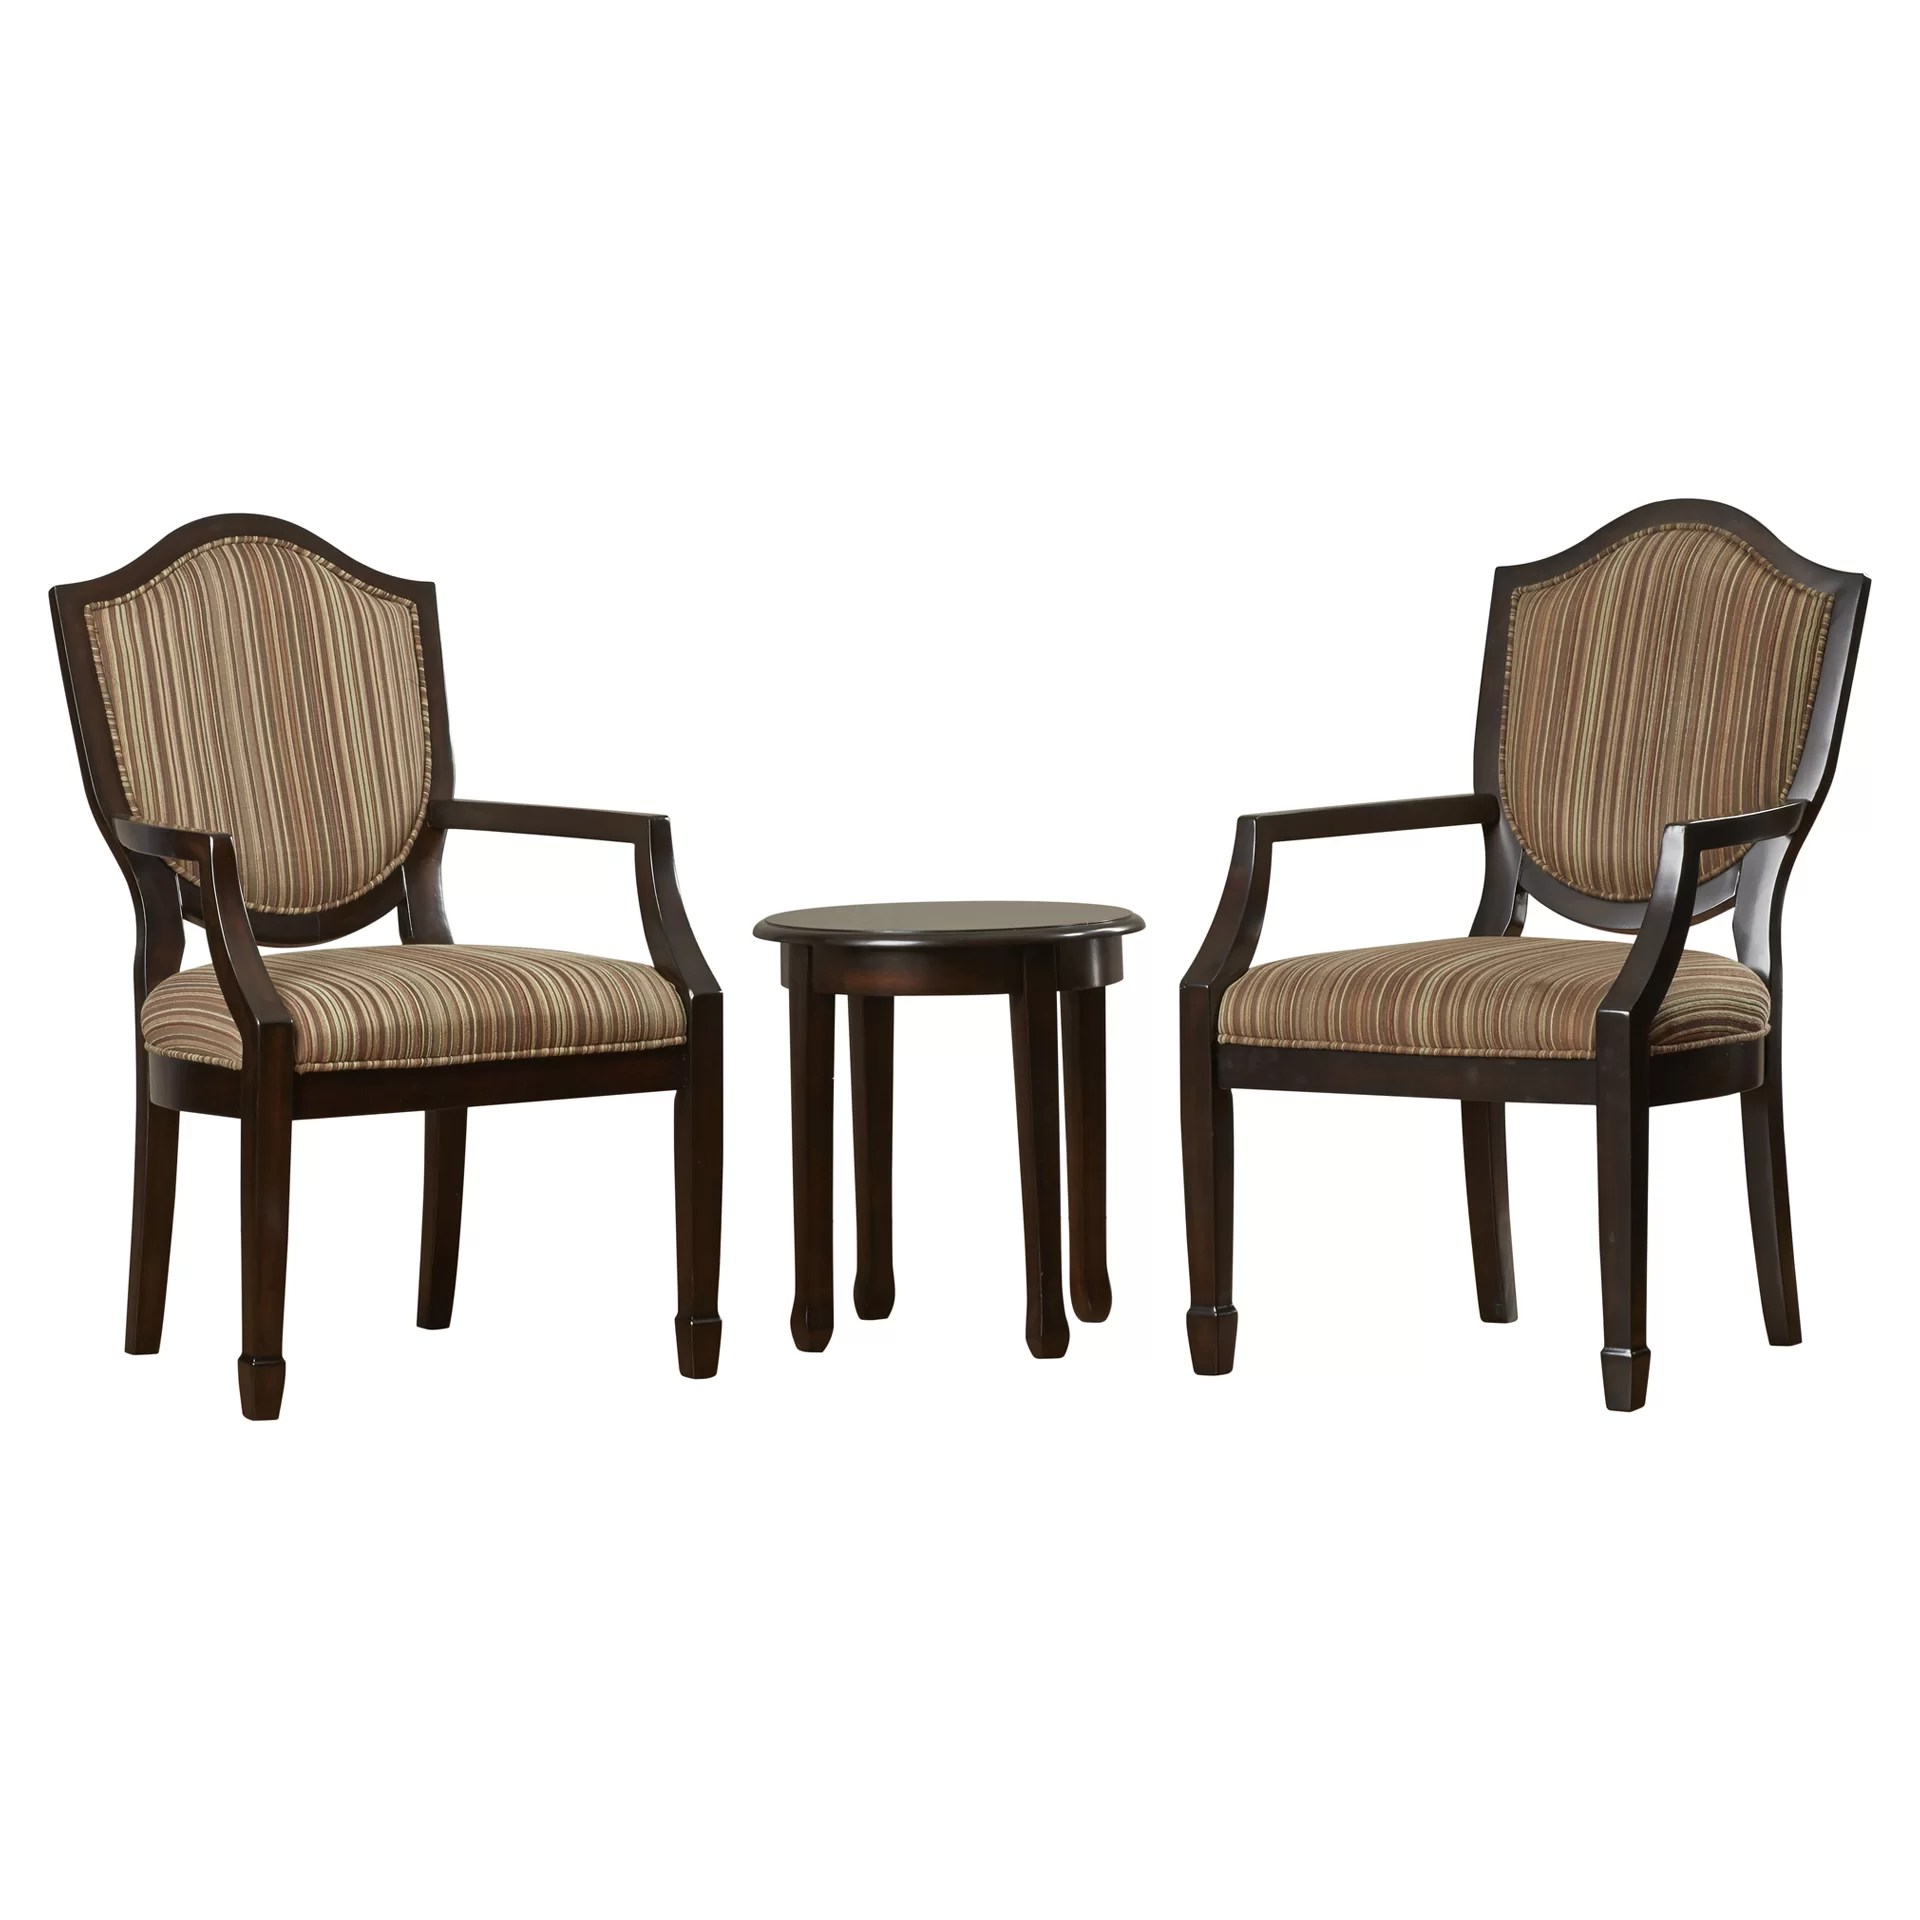 chair with arm table antique ladder back chairs darby home co underhill 3 piece cotton and side